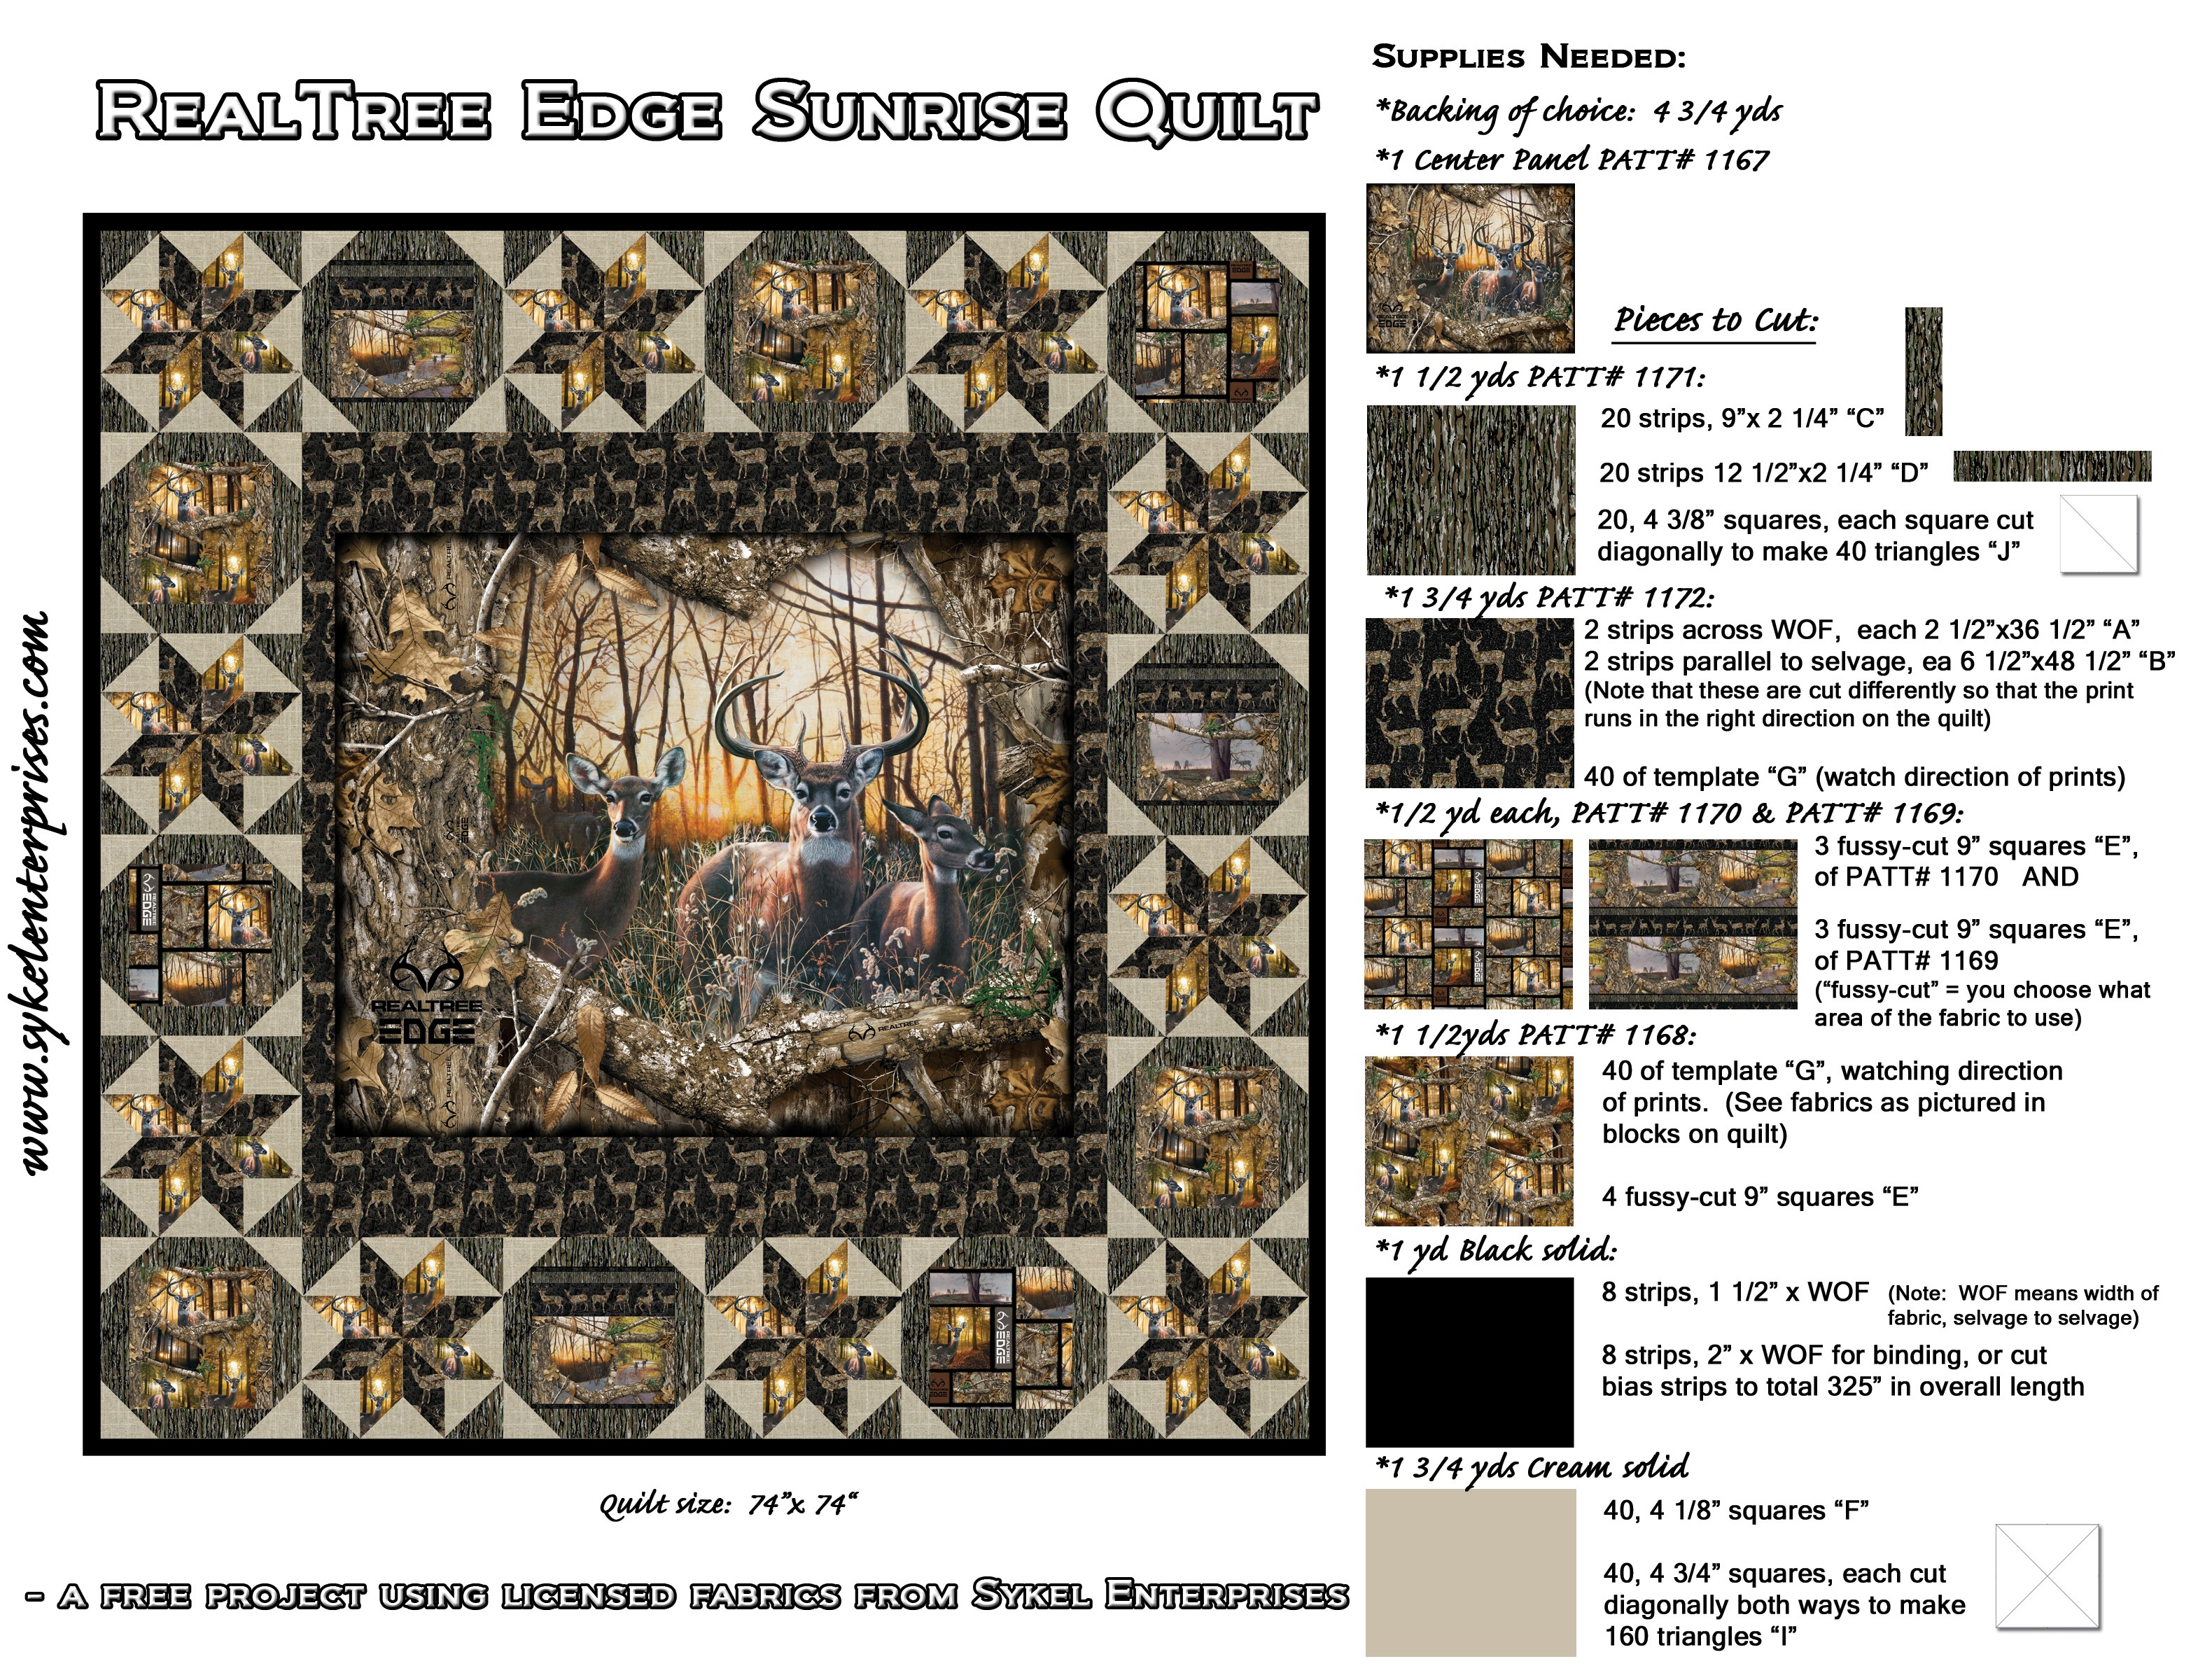 RealTree Edge Sunrise Quilt